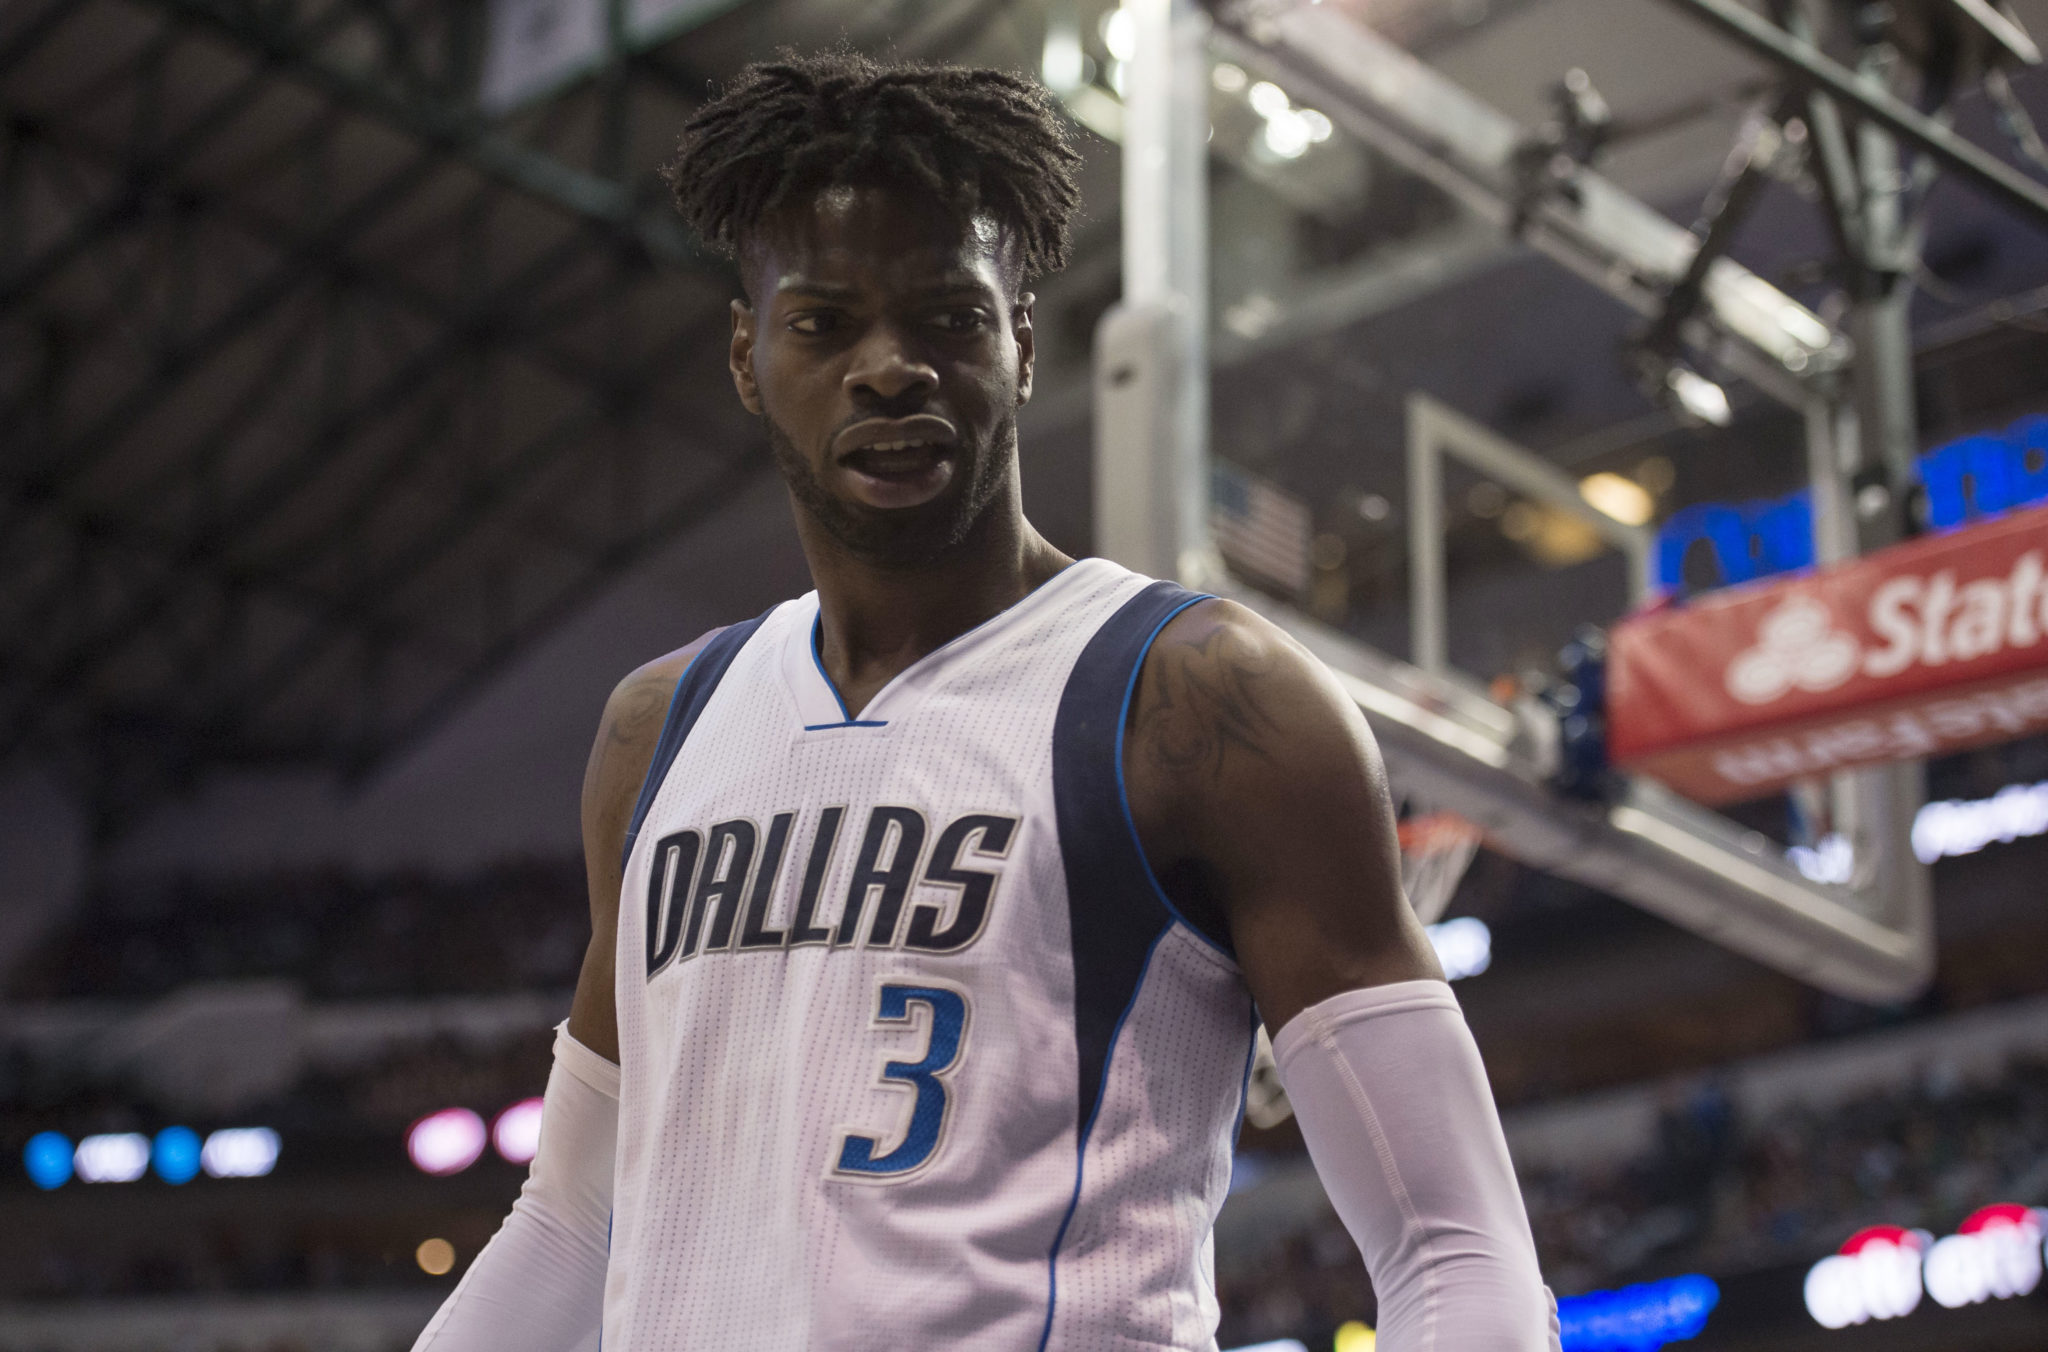 Despite Being Unsigned, Nerlens Noel Can Fit With Any Team